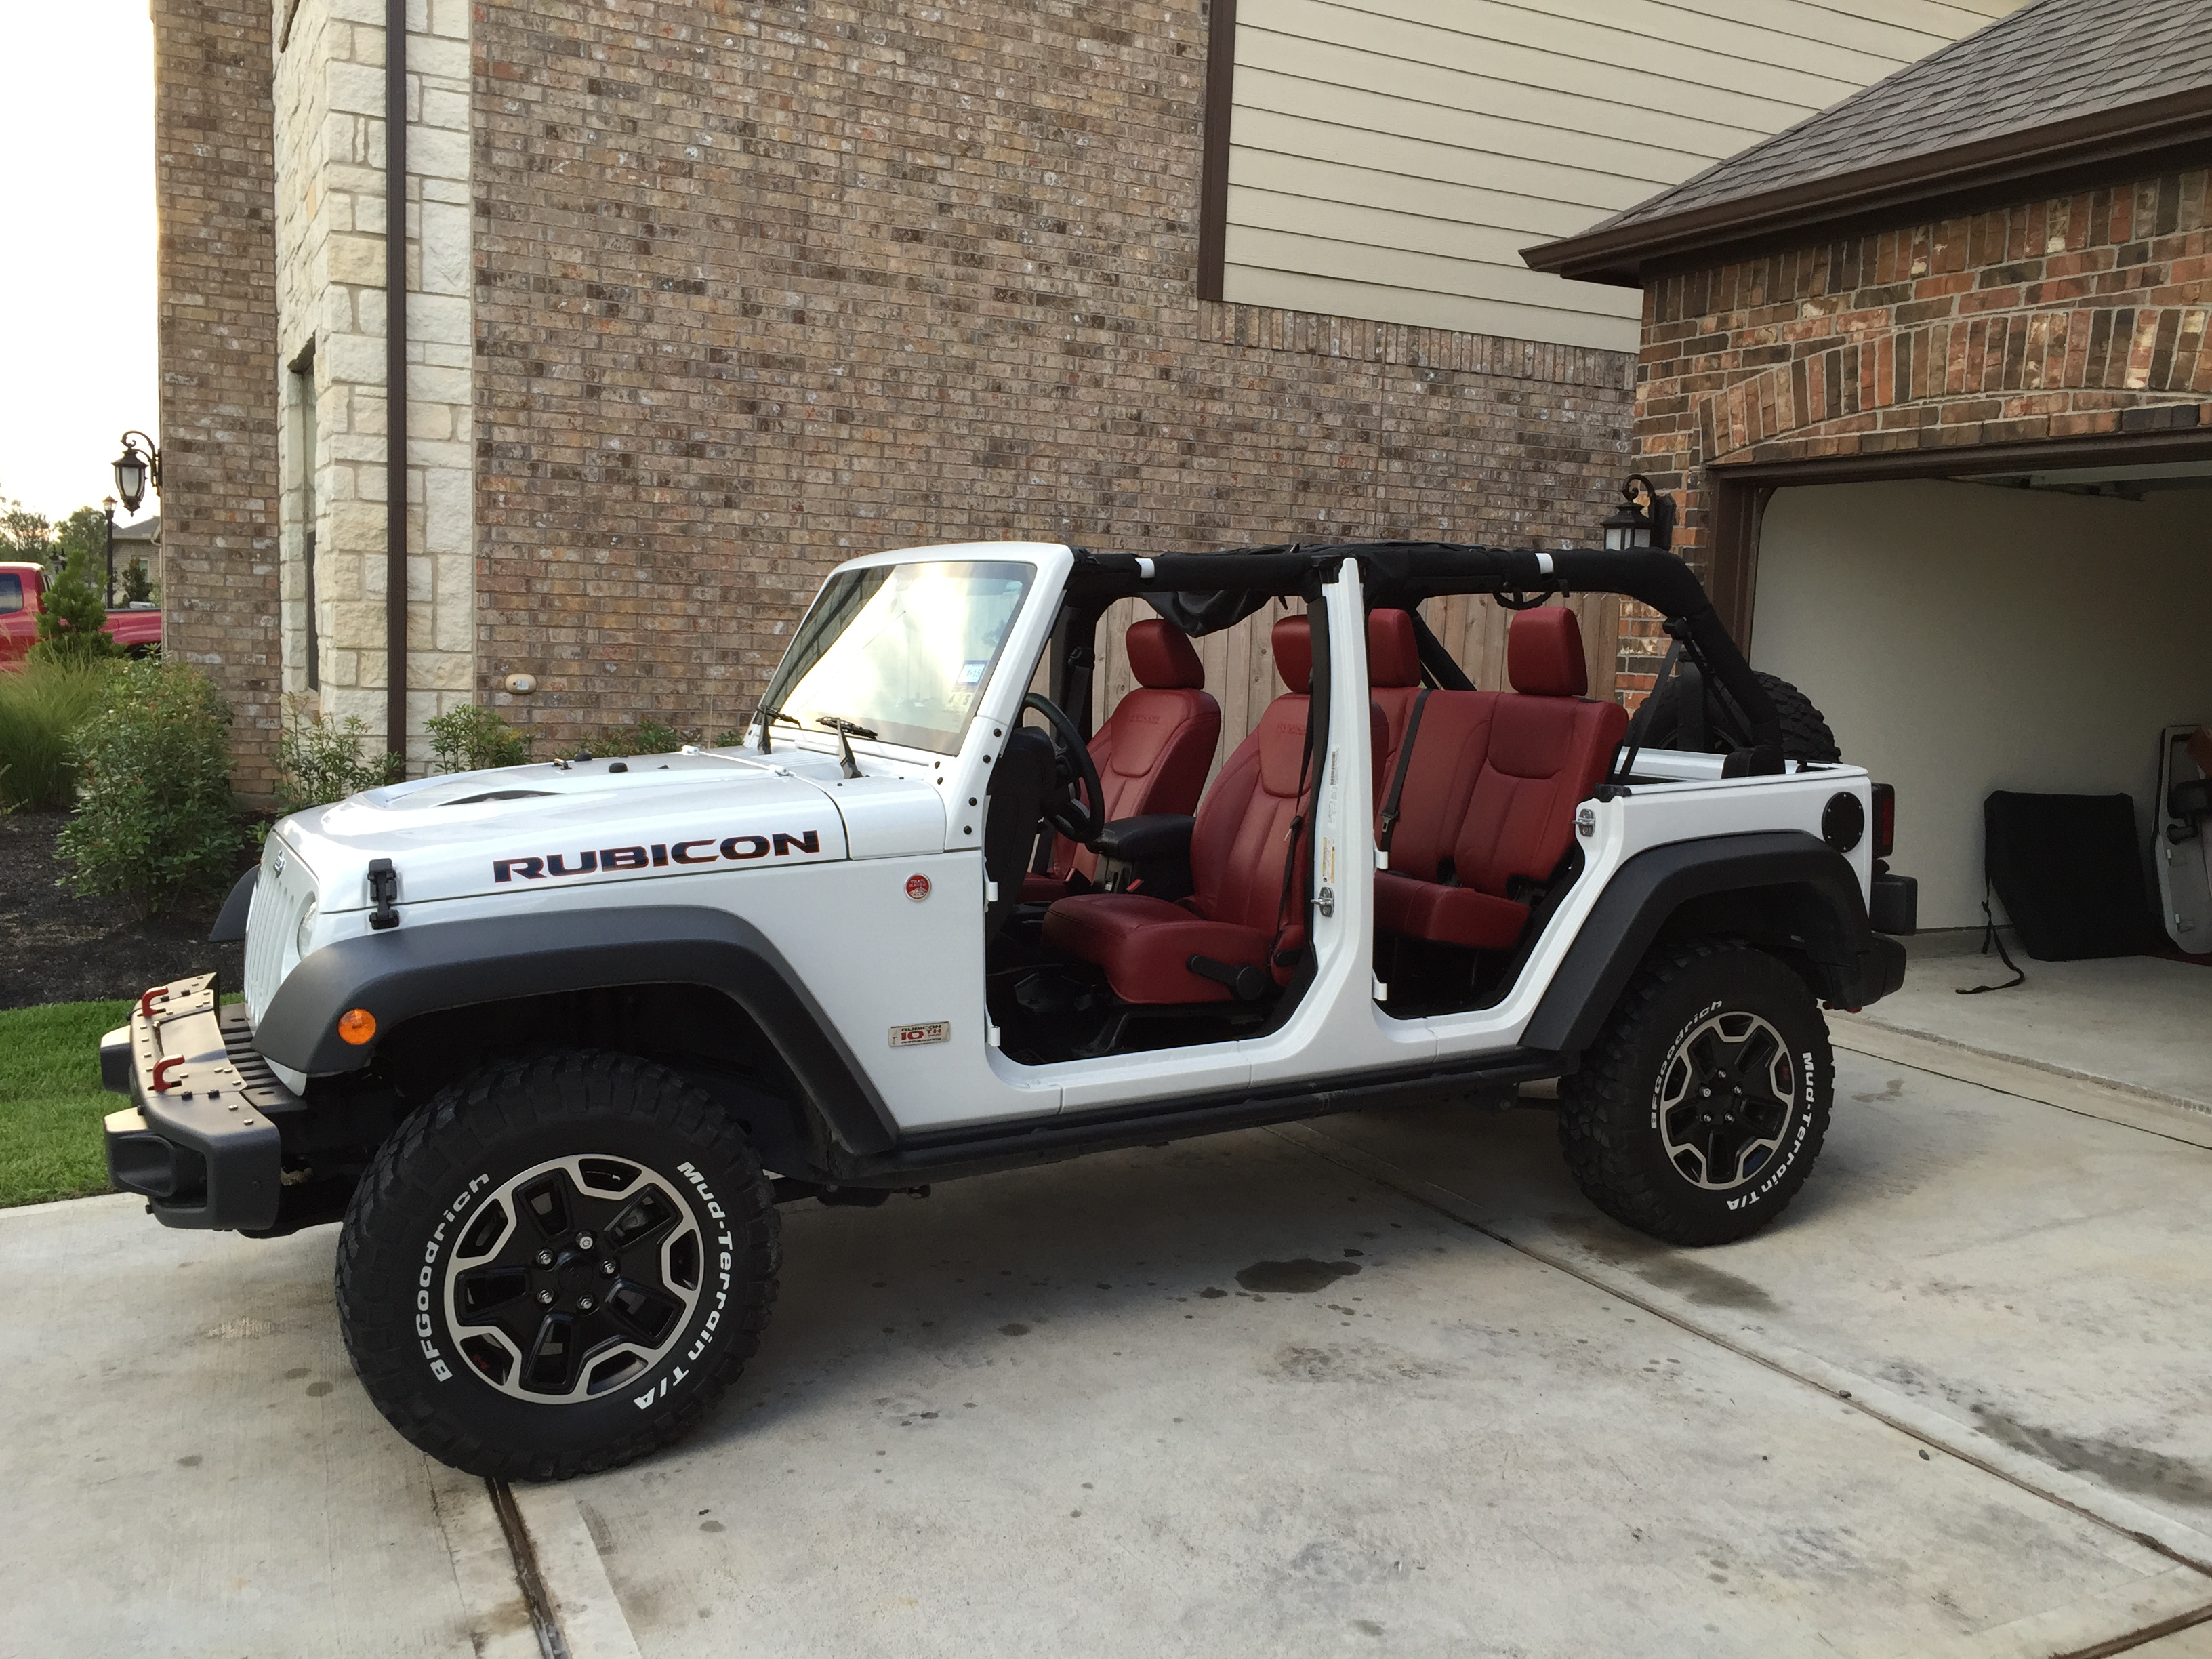 Jeep wrangler resale values 20140923_235849191_ios jpg